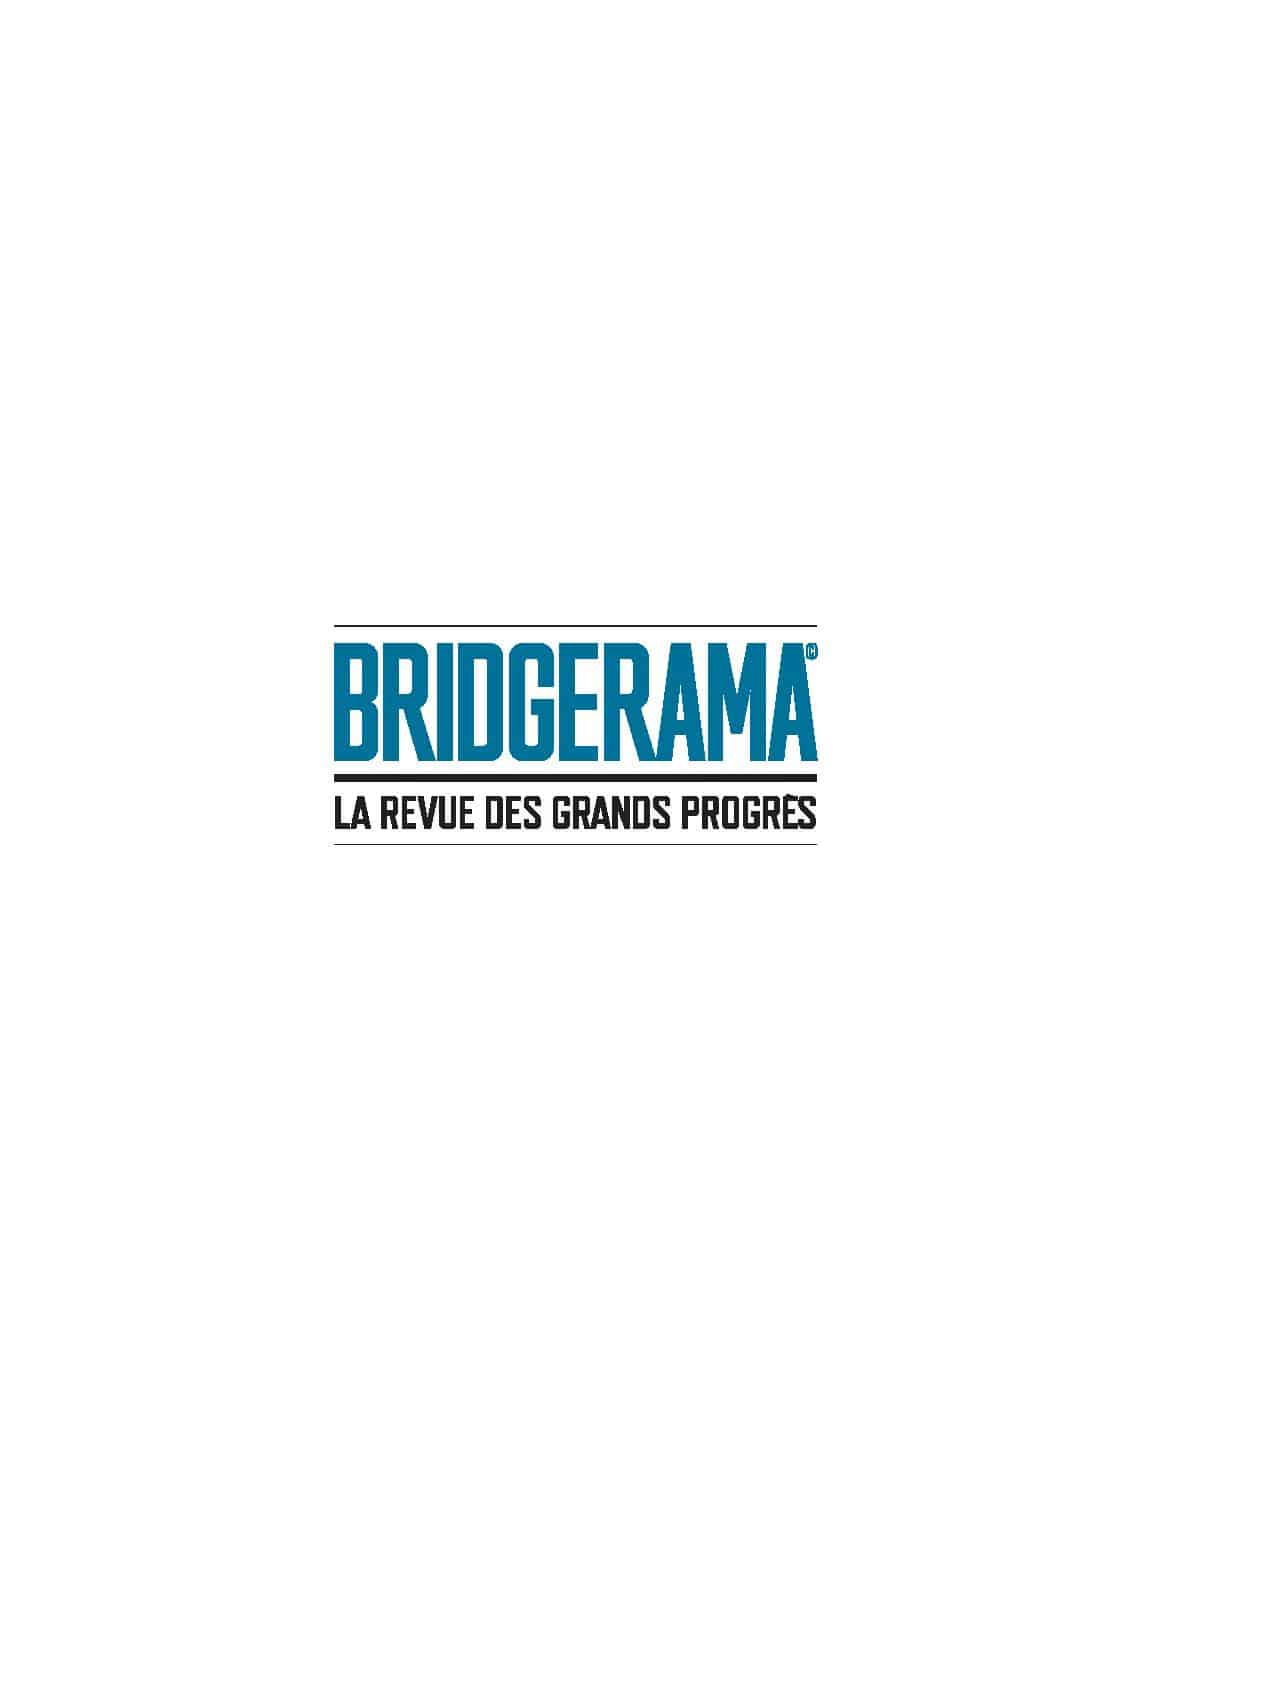 logo 2019 BRIDGERAMA-page-001